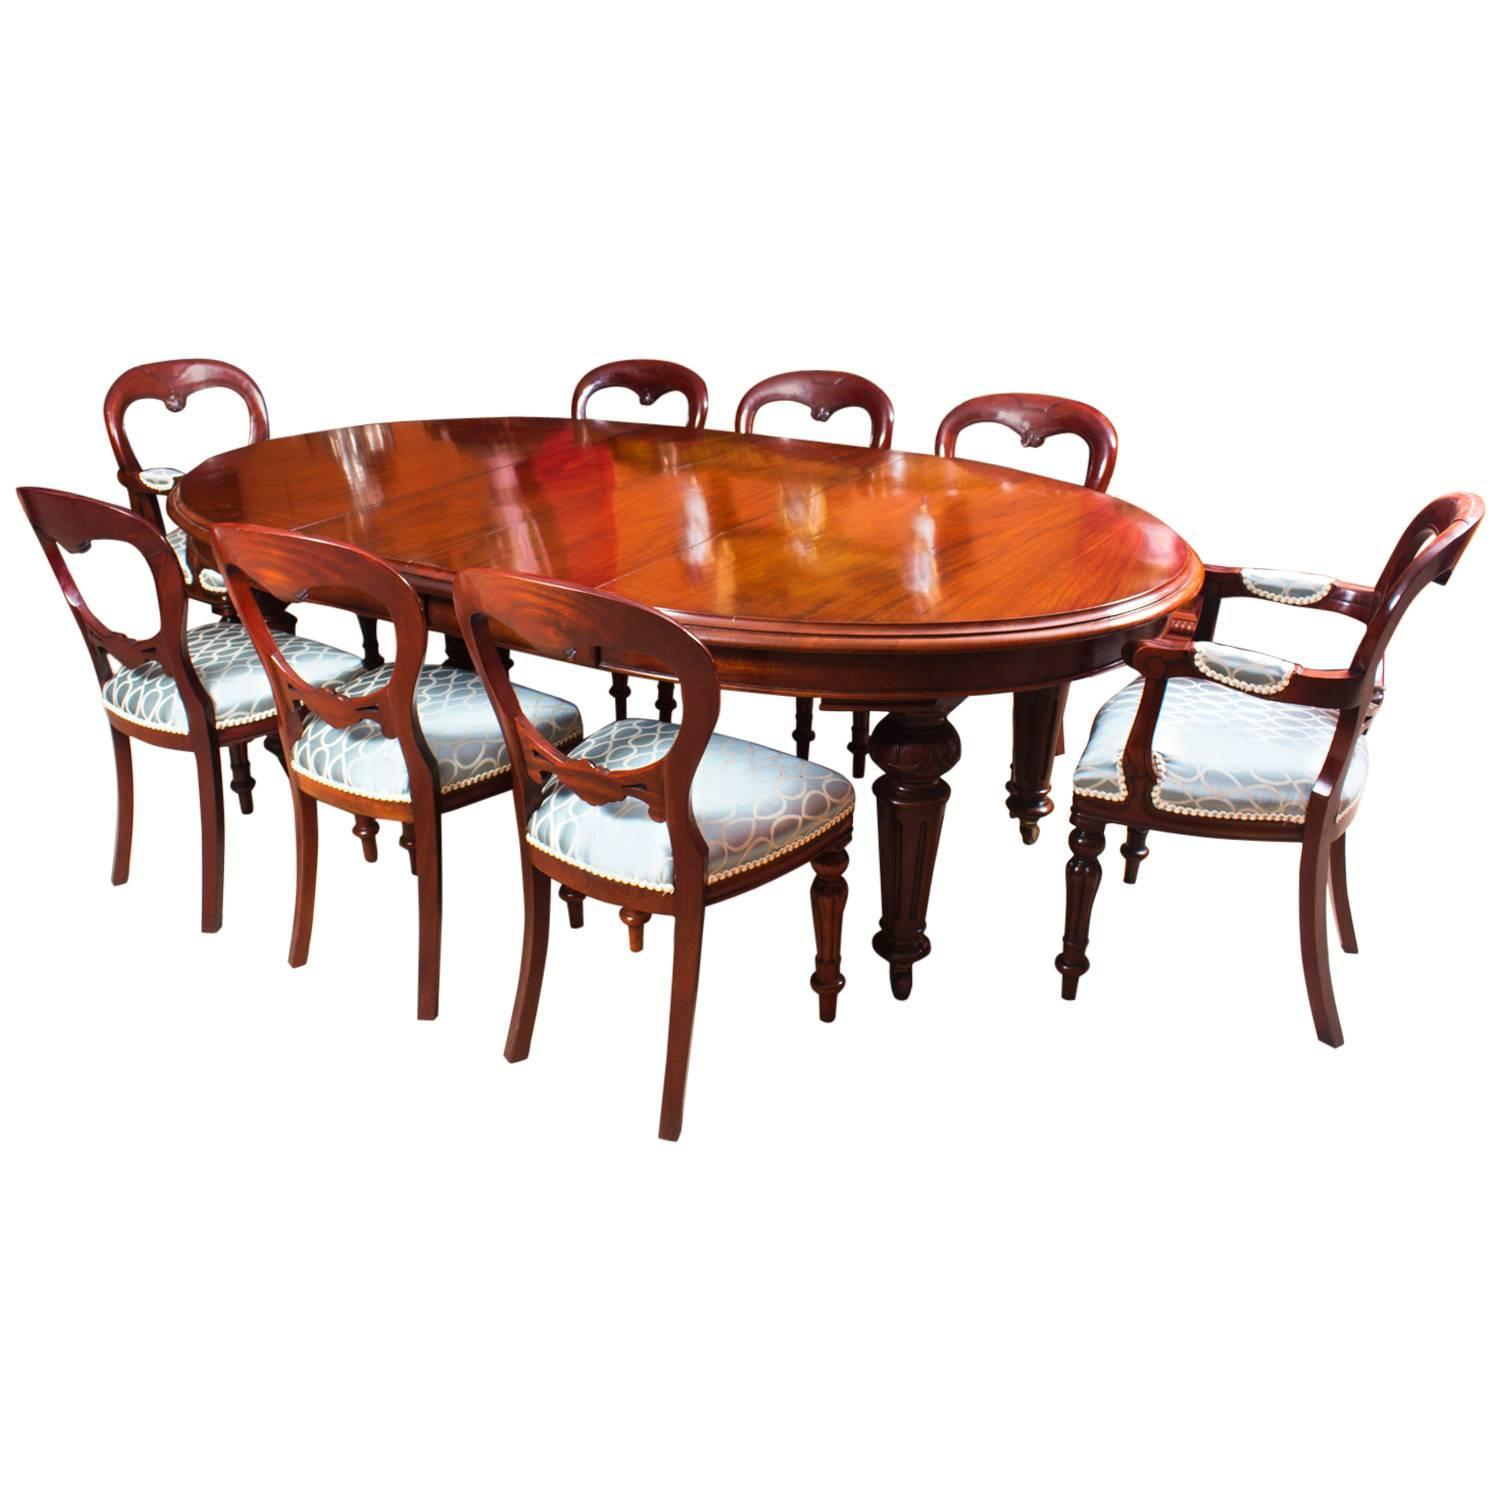 Antique victorian oval dining table 8 chairs for Dining table and 8 chairs